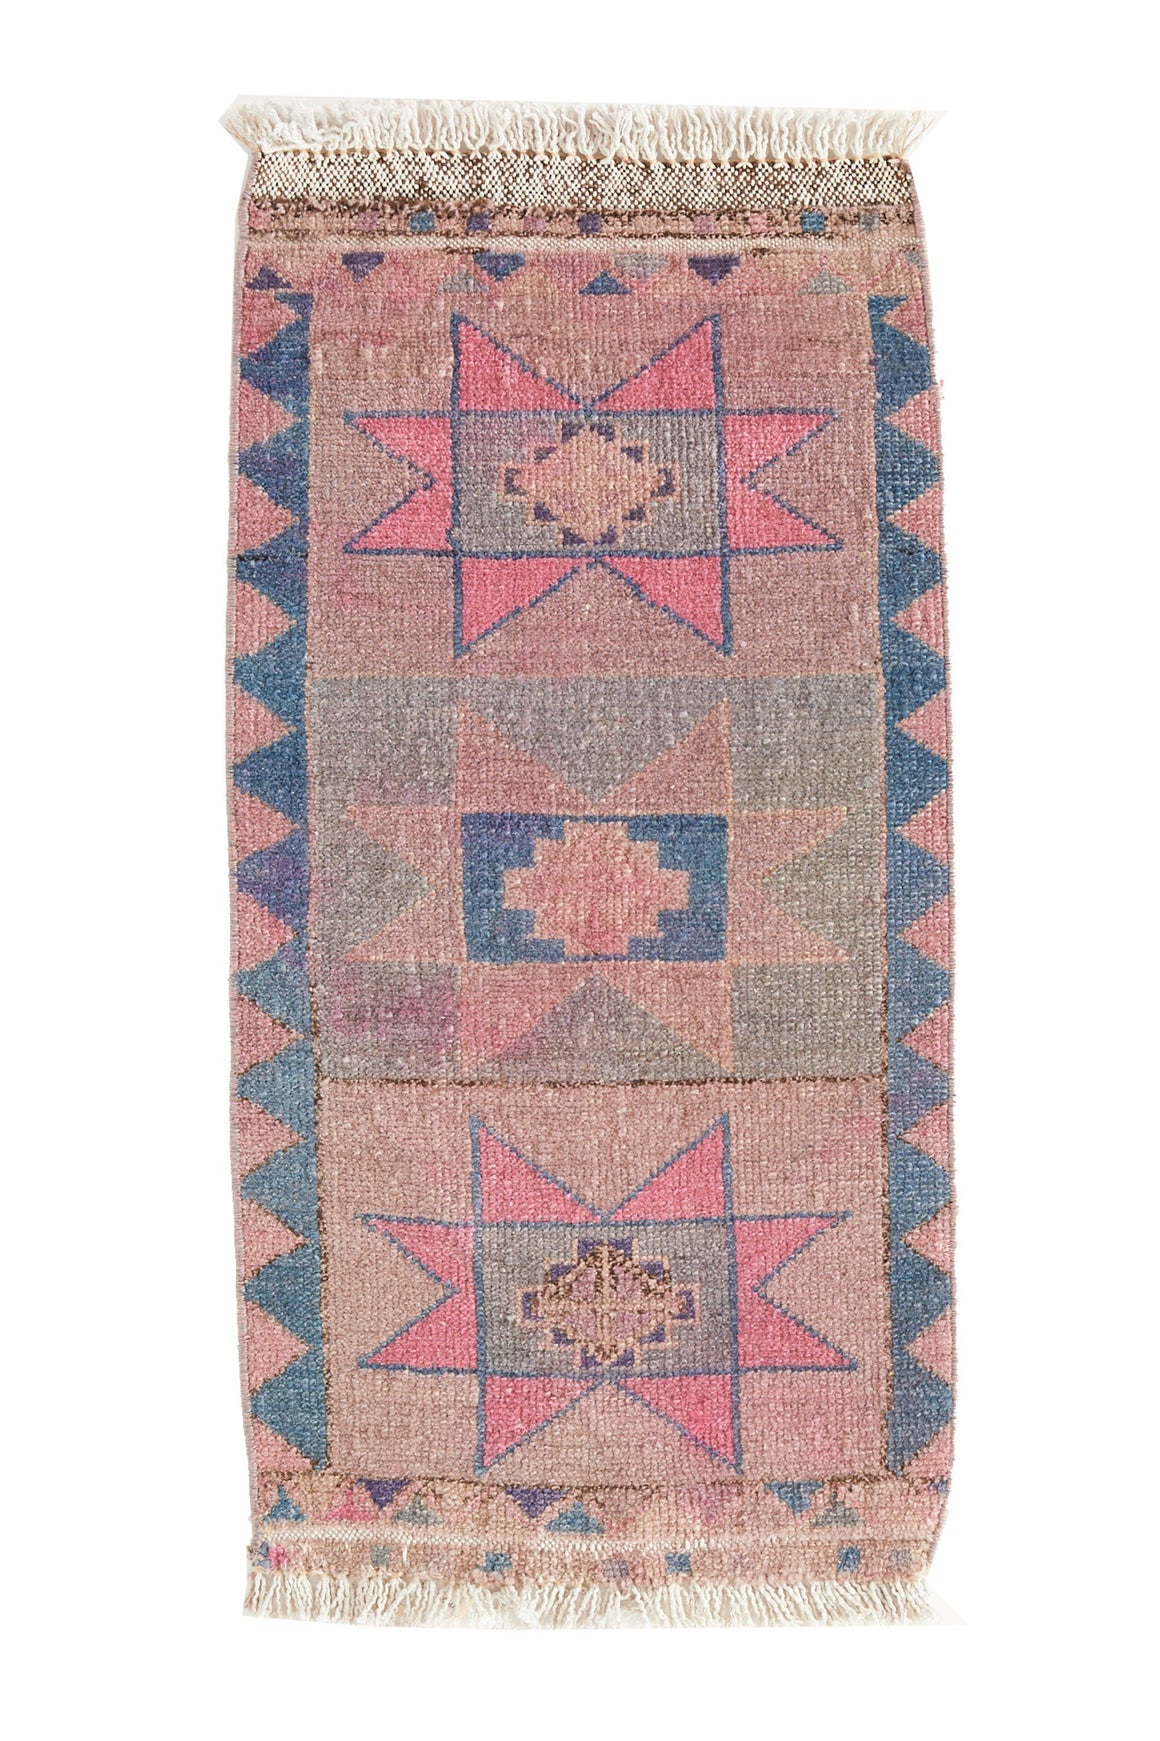 No. 478 Petite Vintage Rug - 1'5'' x 2'11'' - Canary Lane - Curated Textiles